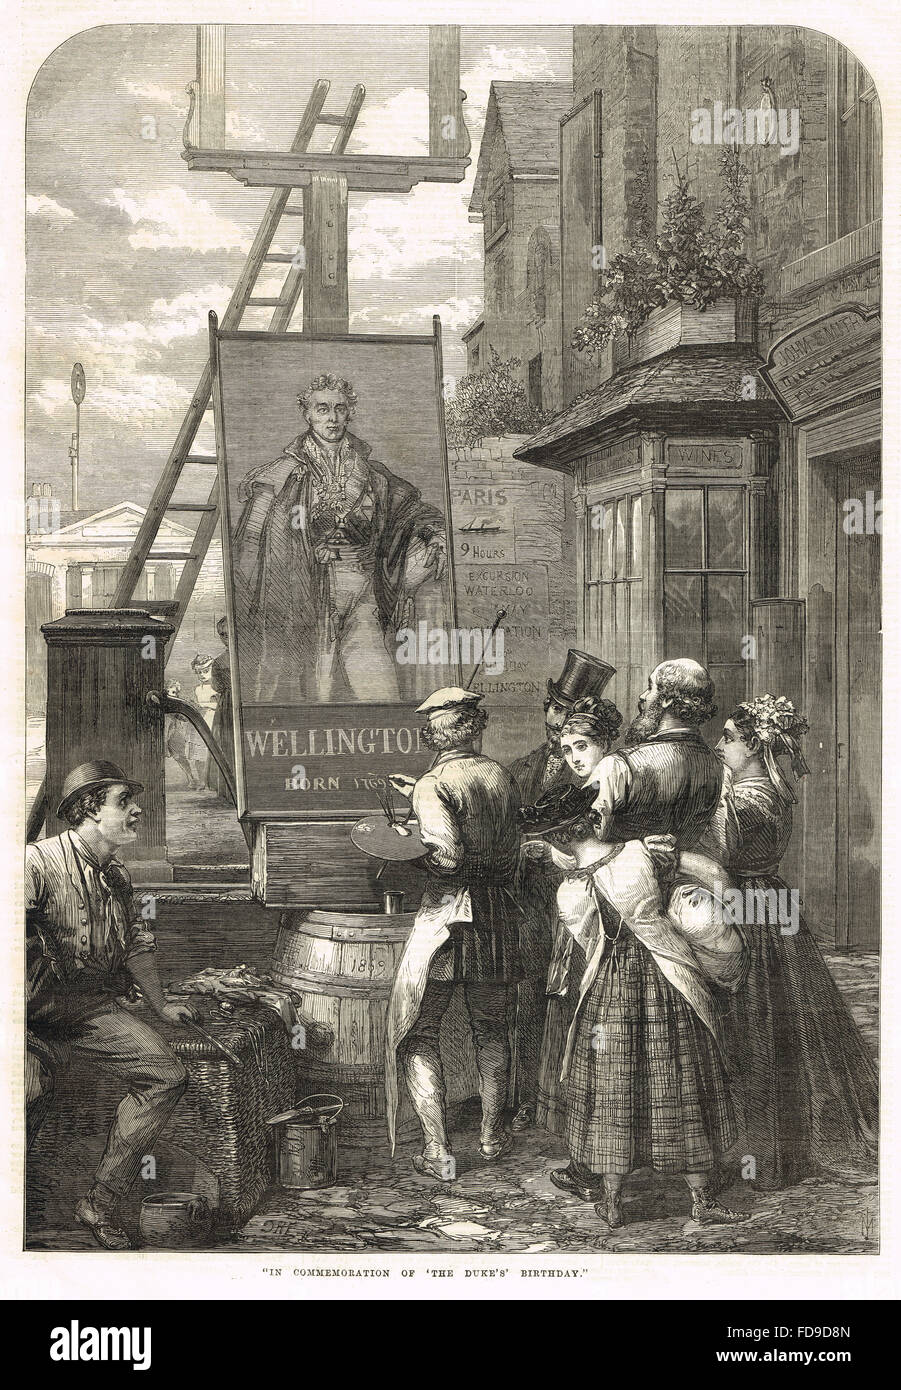 Commissioning of a pub sign in honour of the Duke of Wellington's 100th 'birthday' May 1 1869 - Stock Image